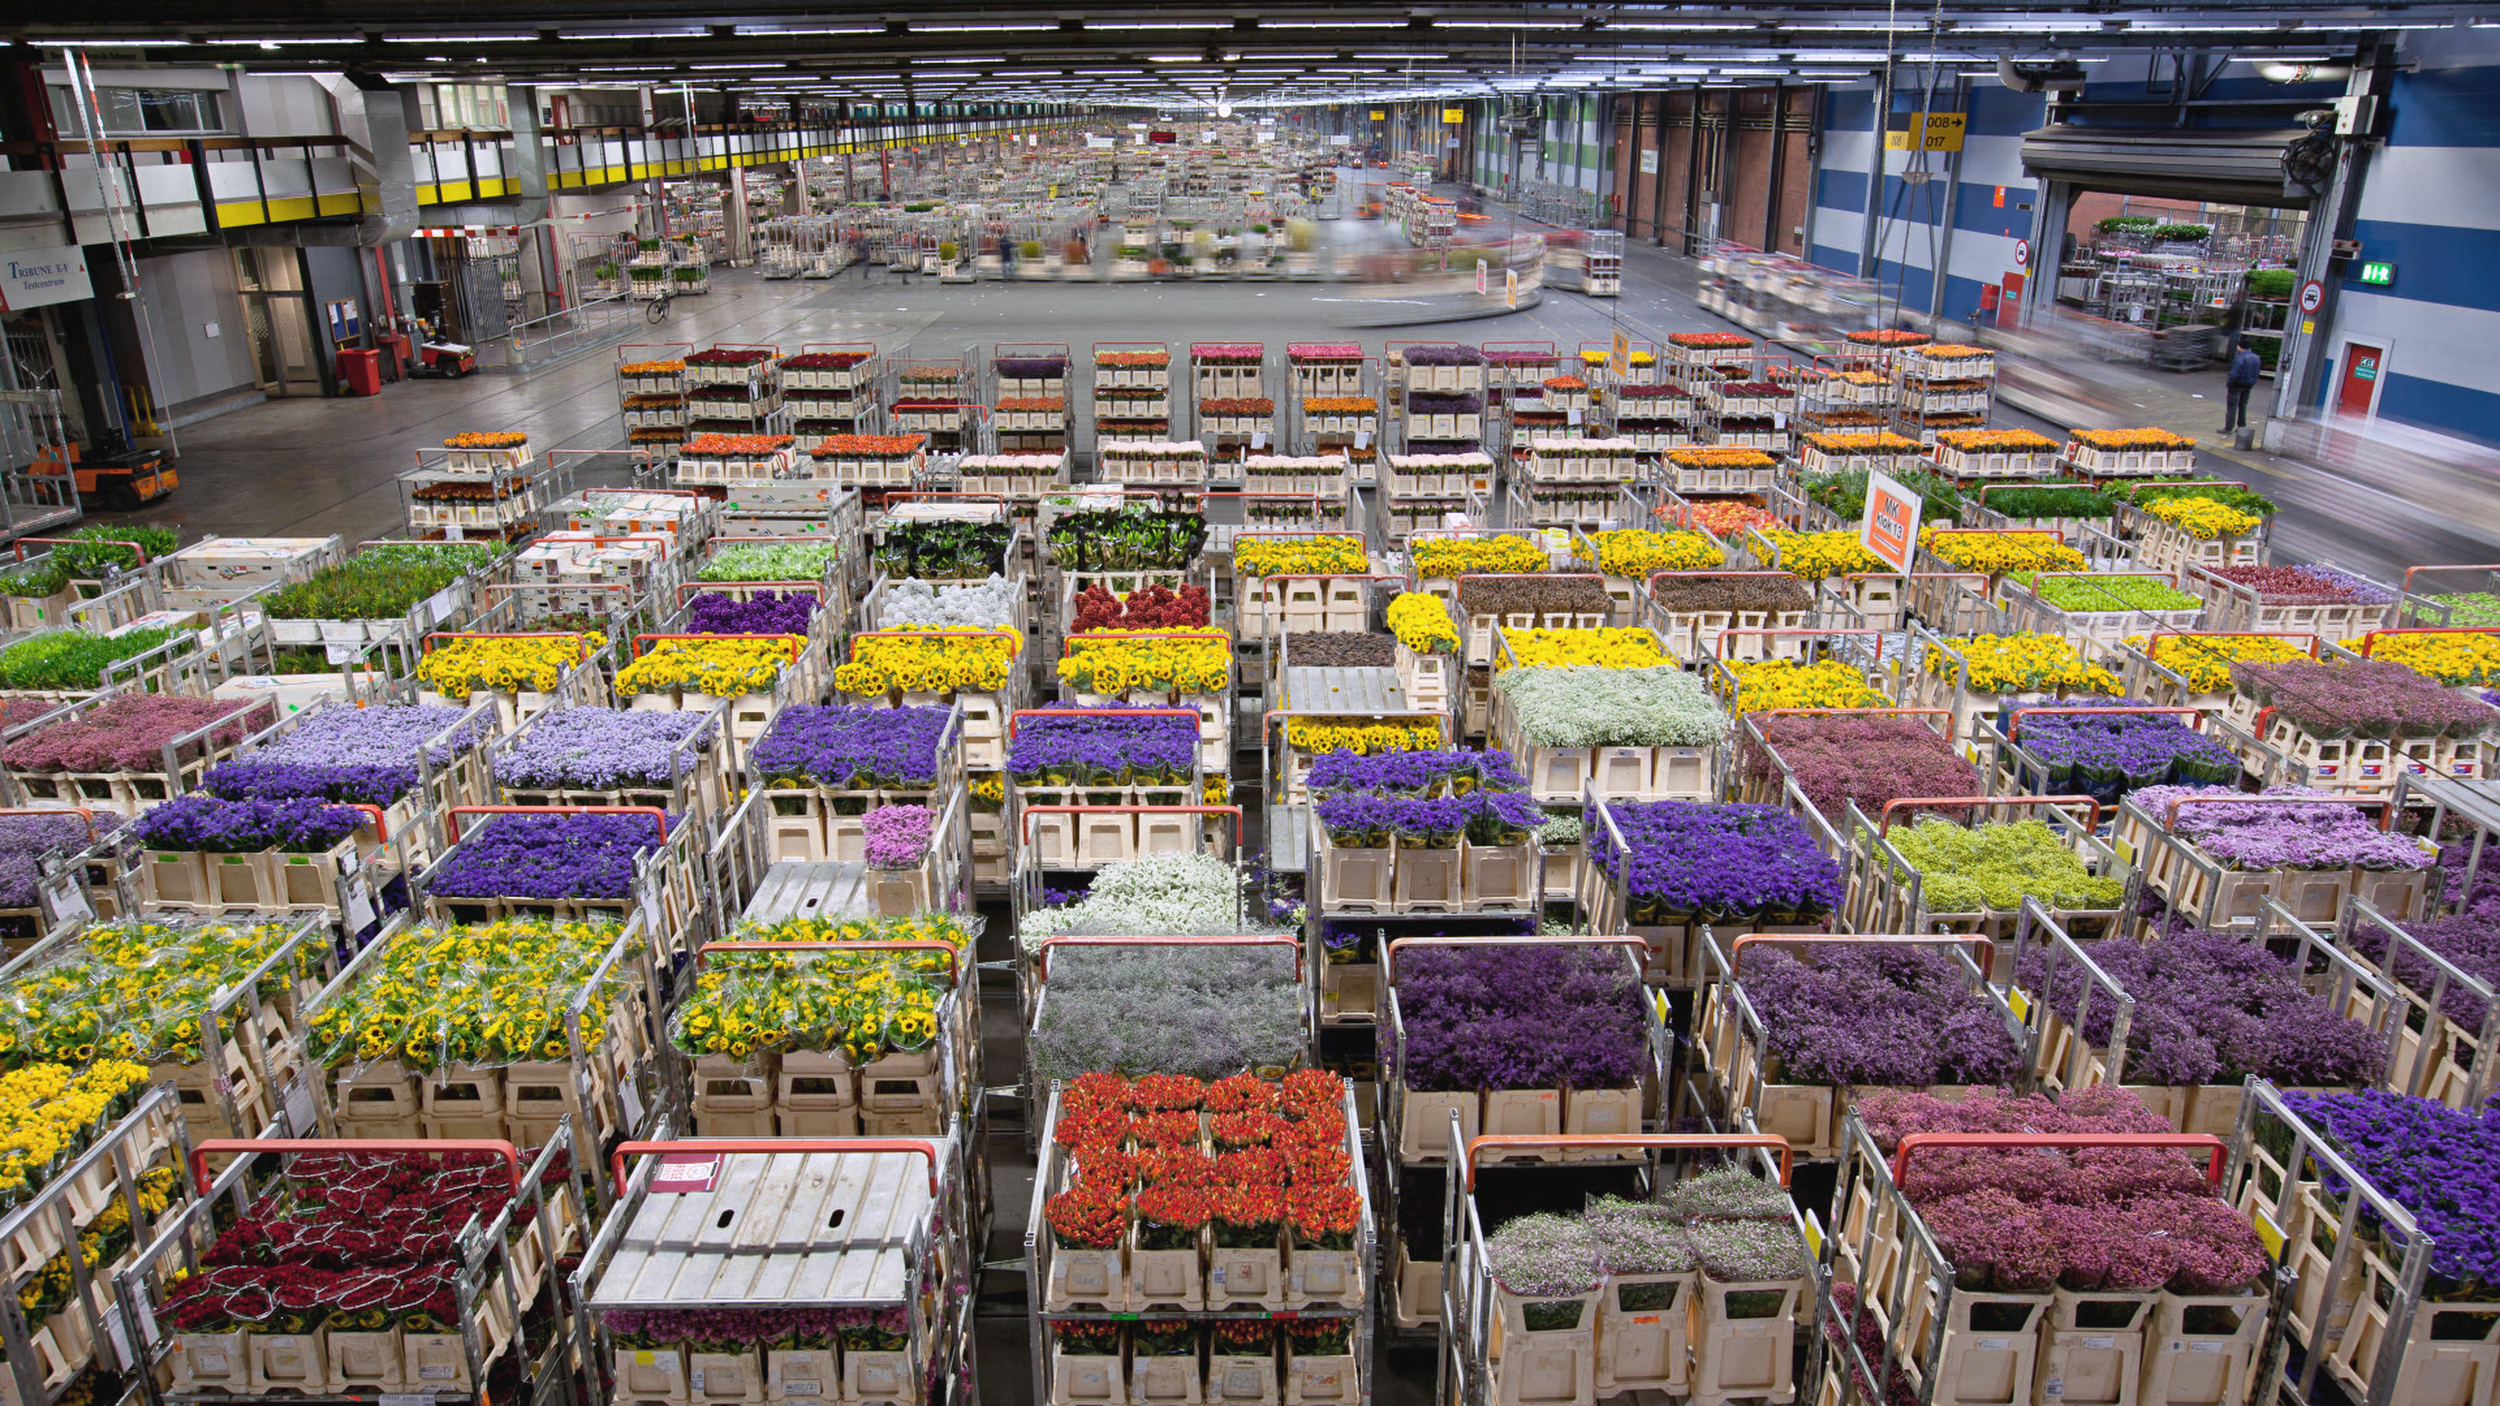 Flowers being prepped for shipment in Aalsmeer, Netherlands.